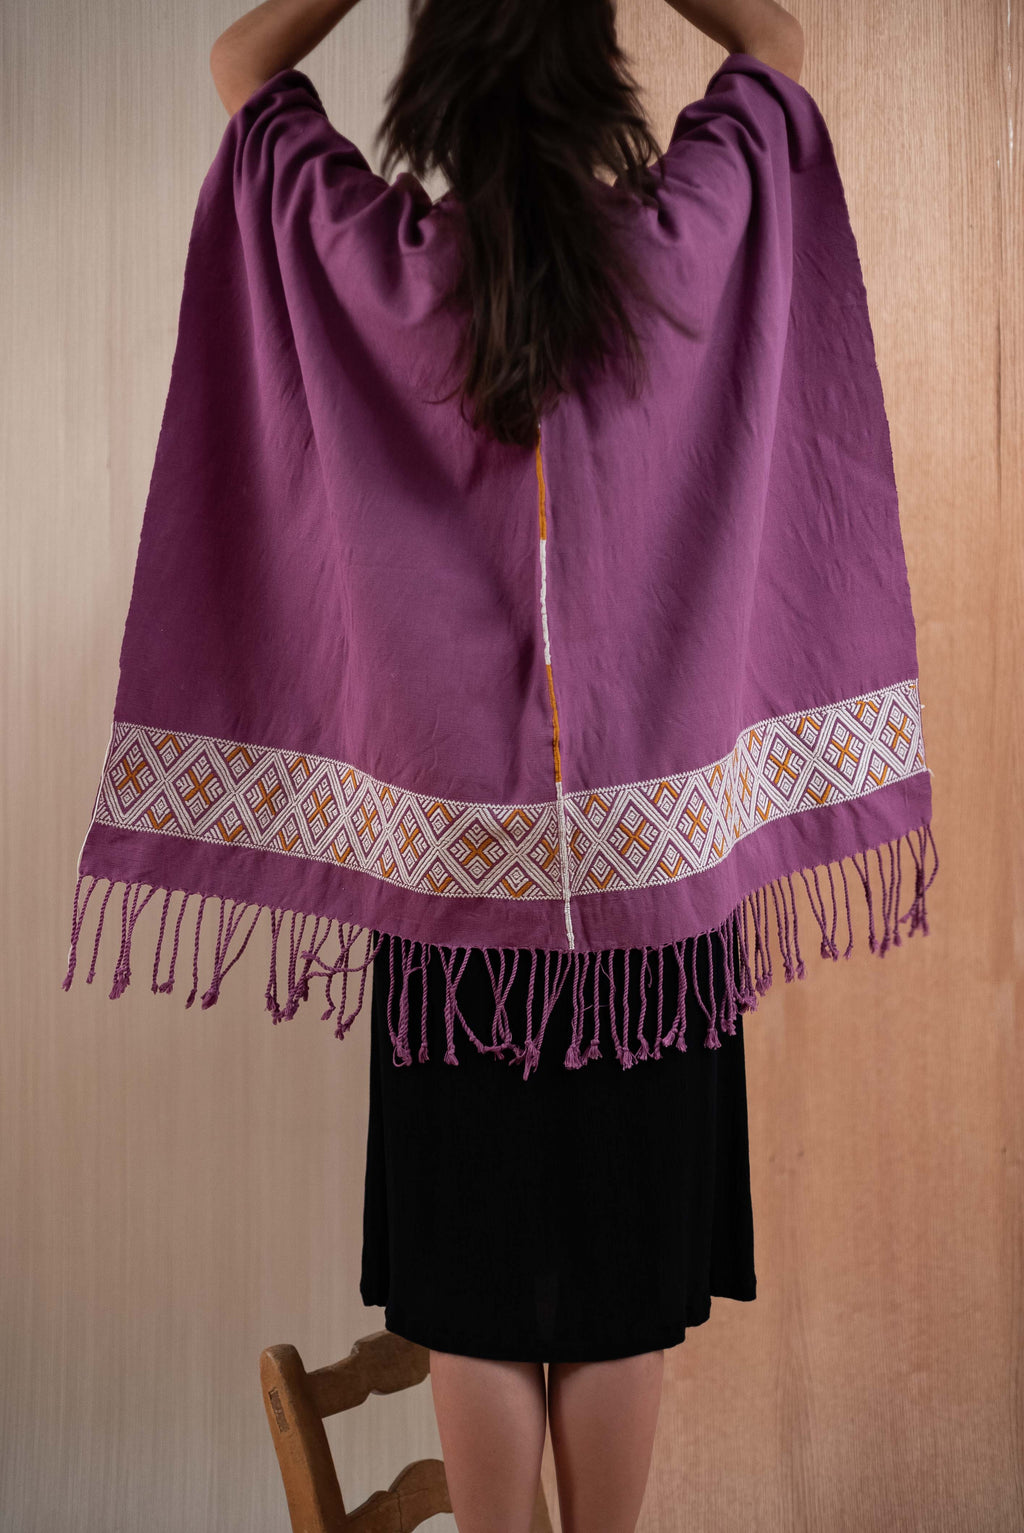 Shawl with purple Chiapas loom - TOCO MADERA - Handcraft shoe from Mexico - Handmade shoe